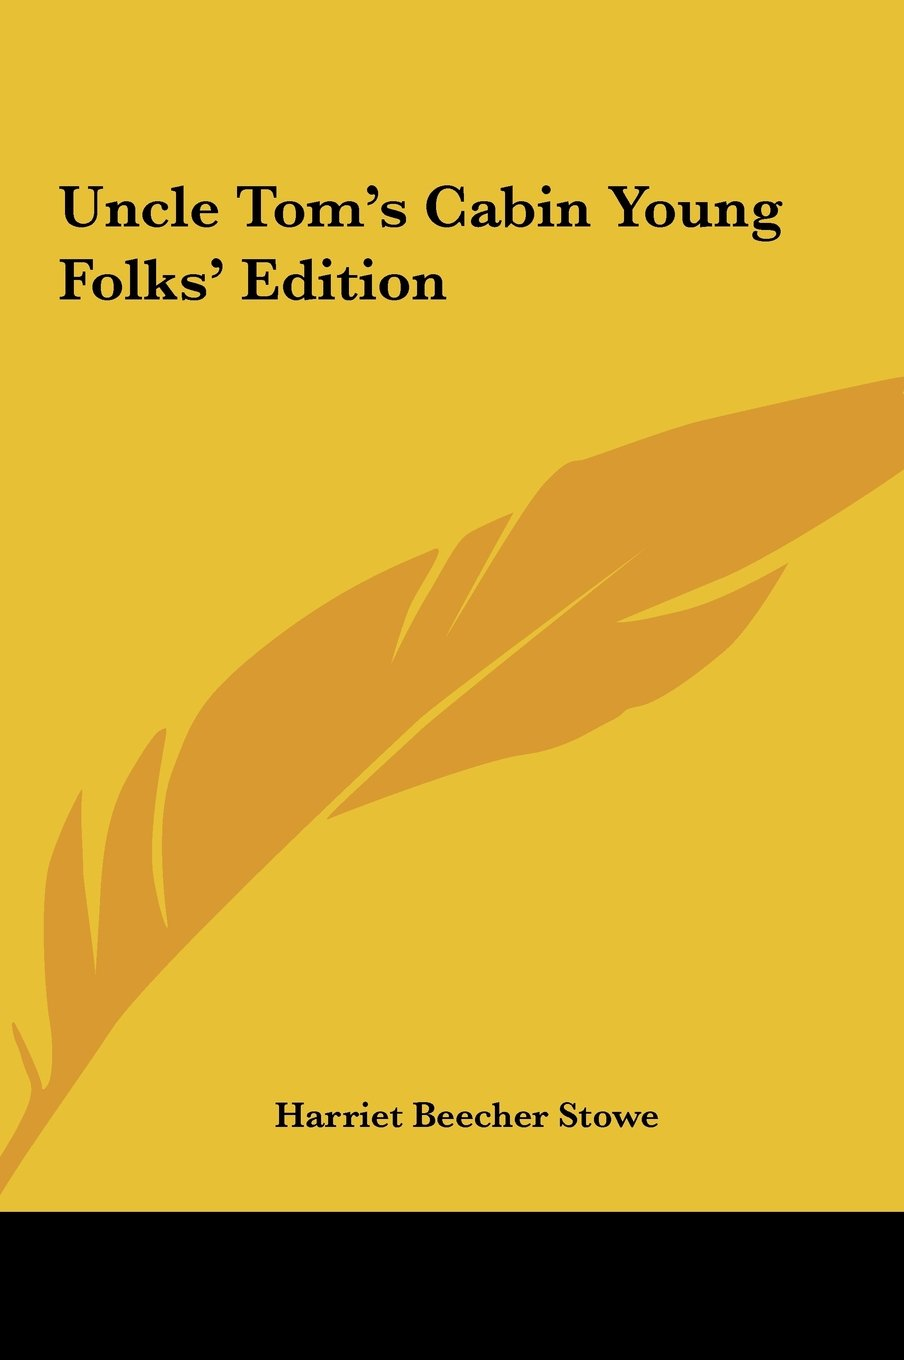 Uncle Tom's Cabin Young Folks' Edition pdf